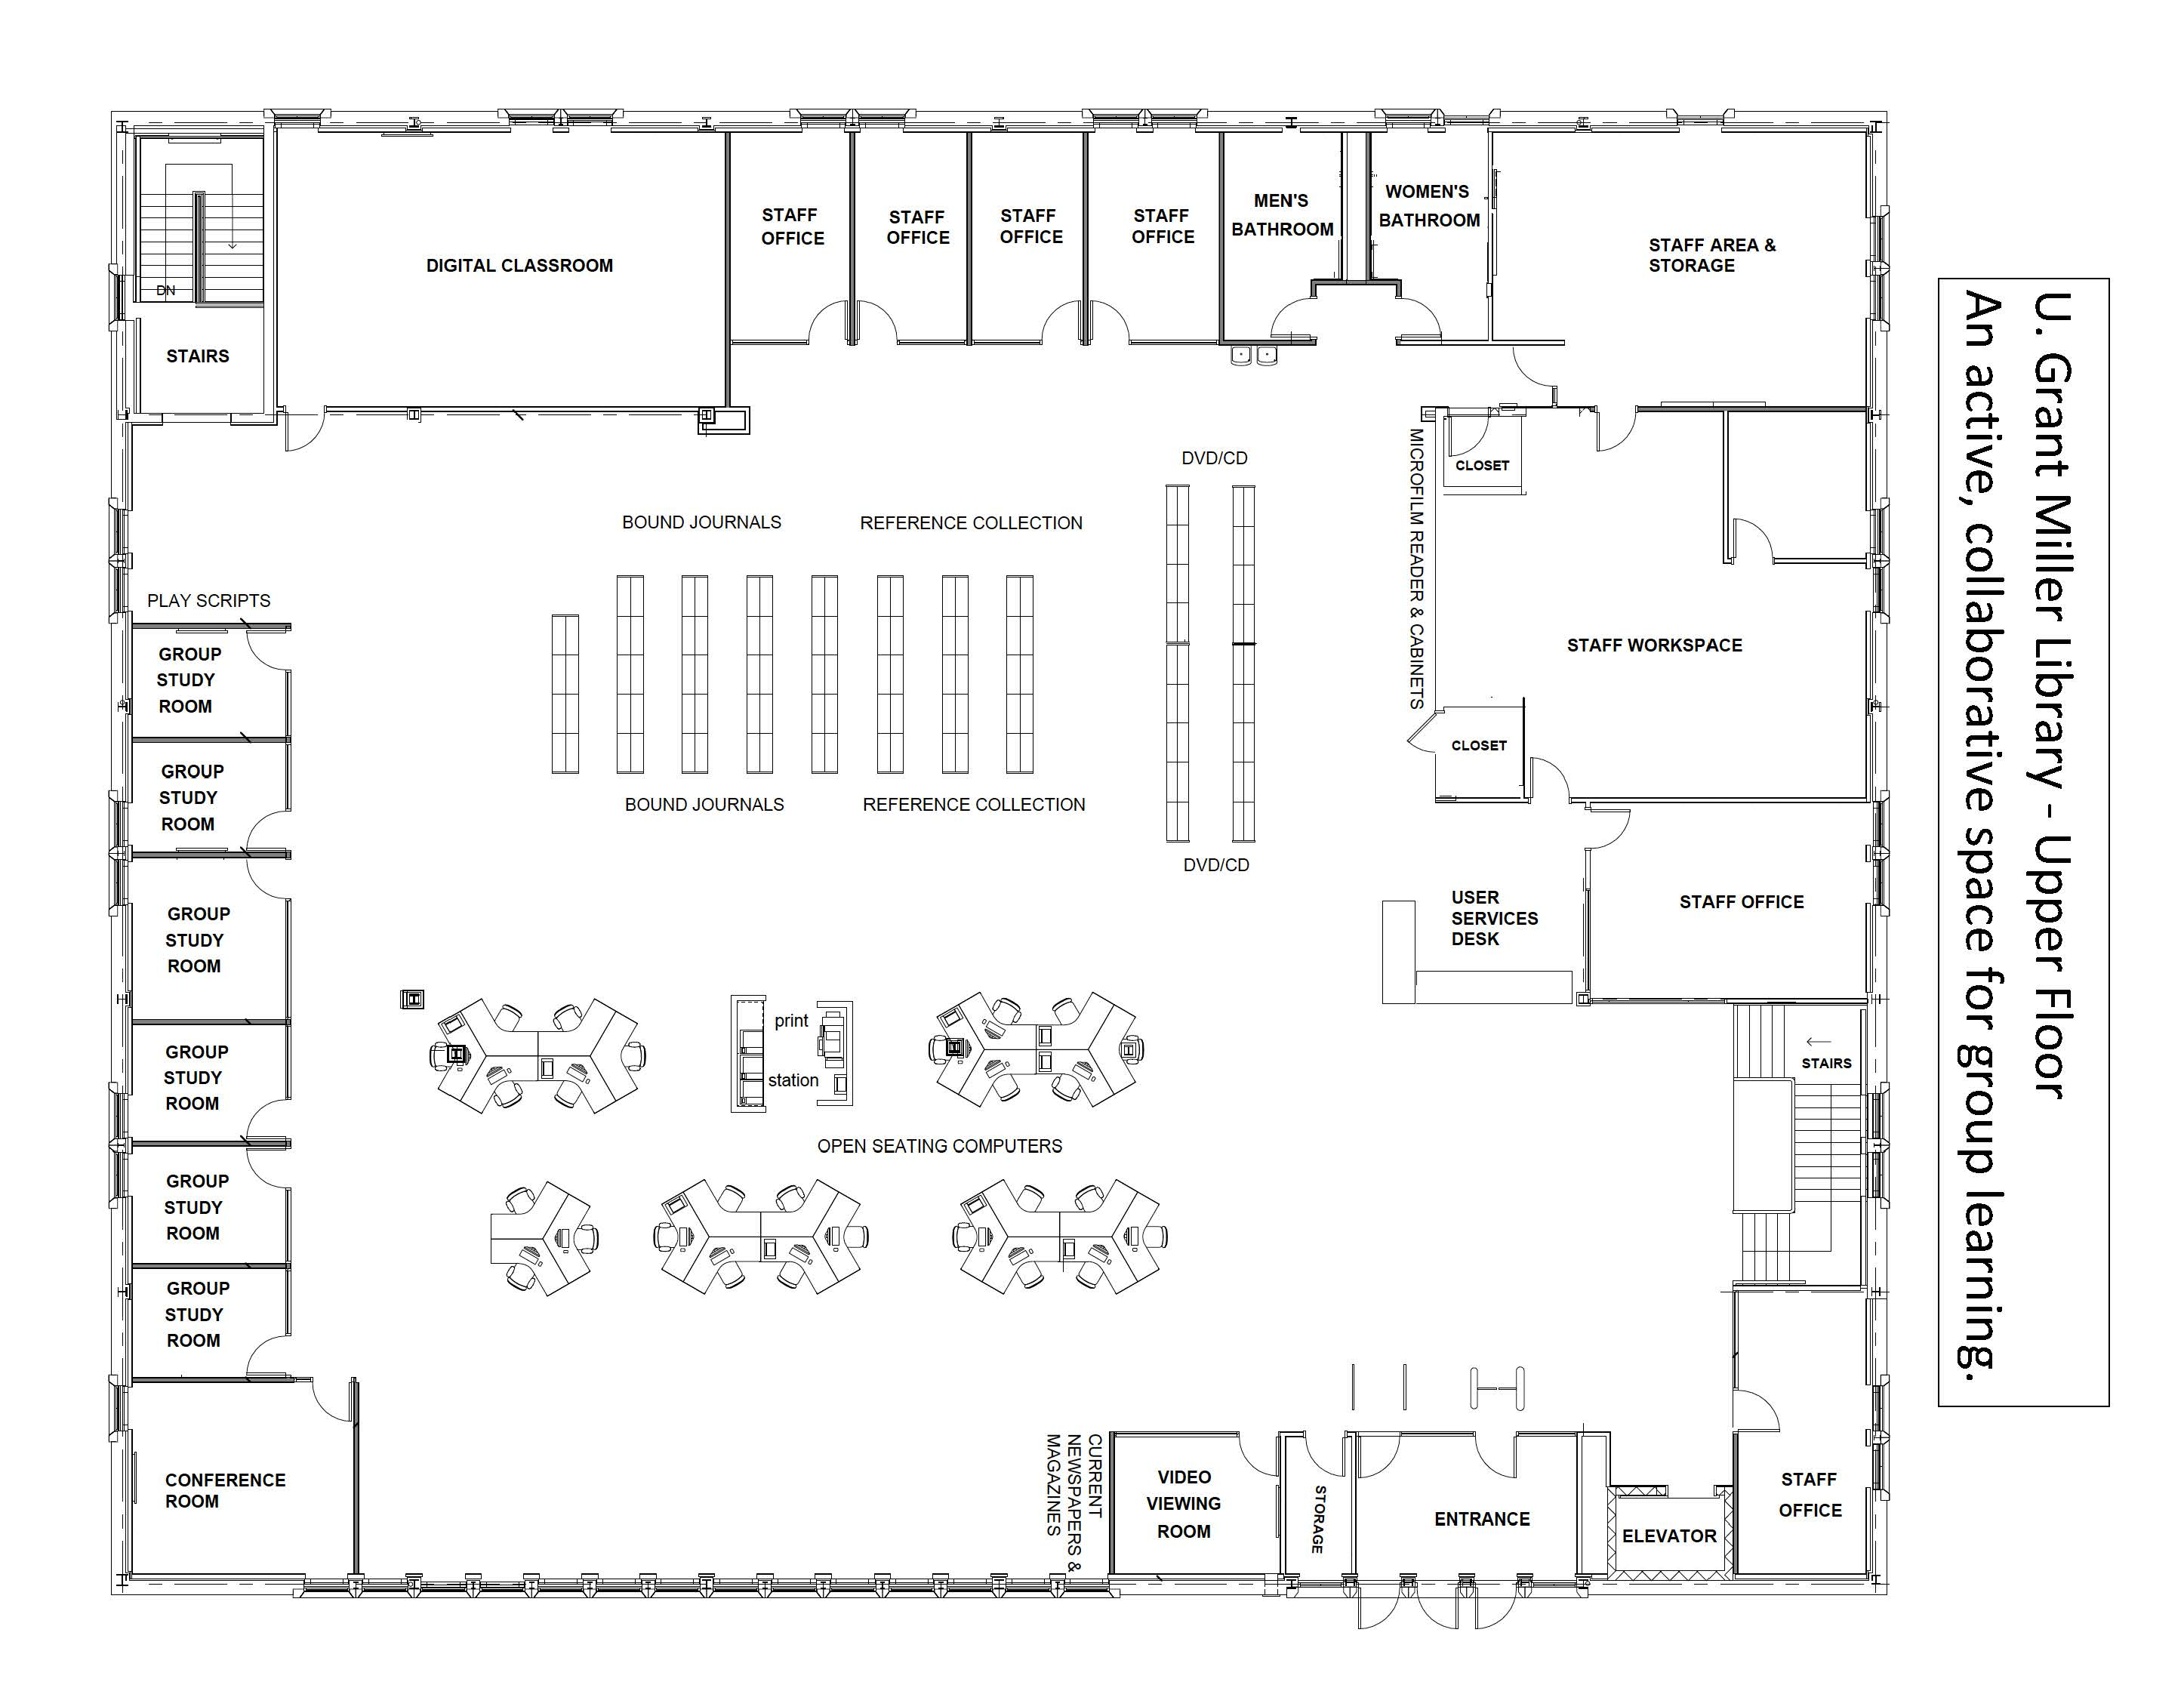 Floor plan for main level of the library